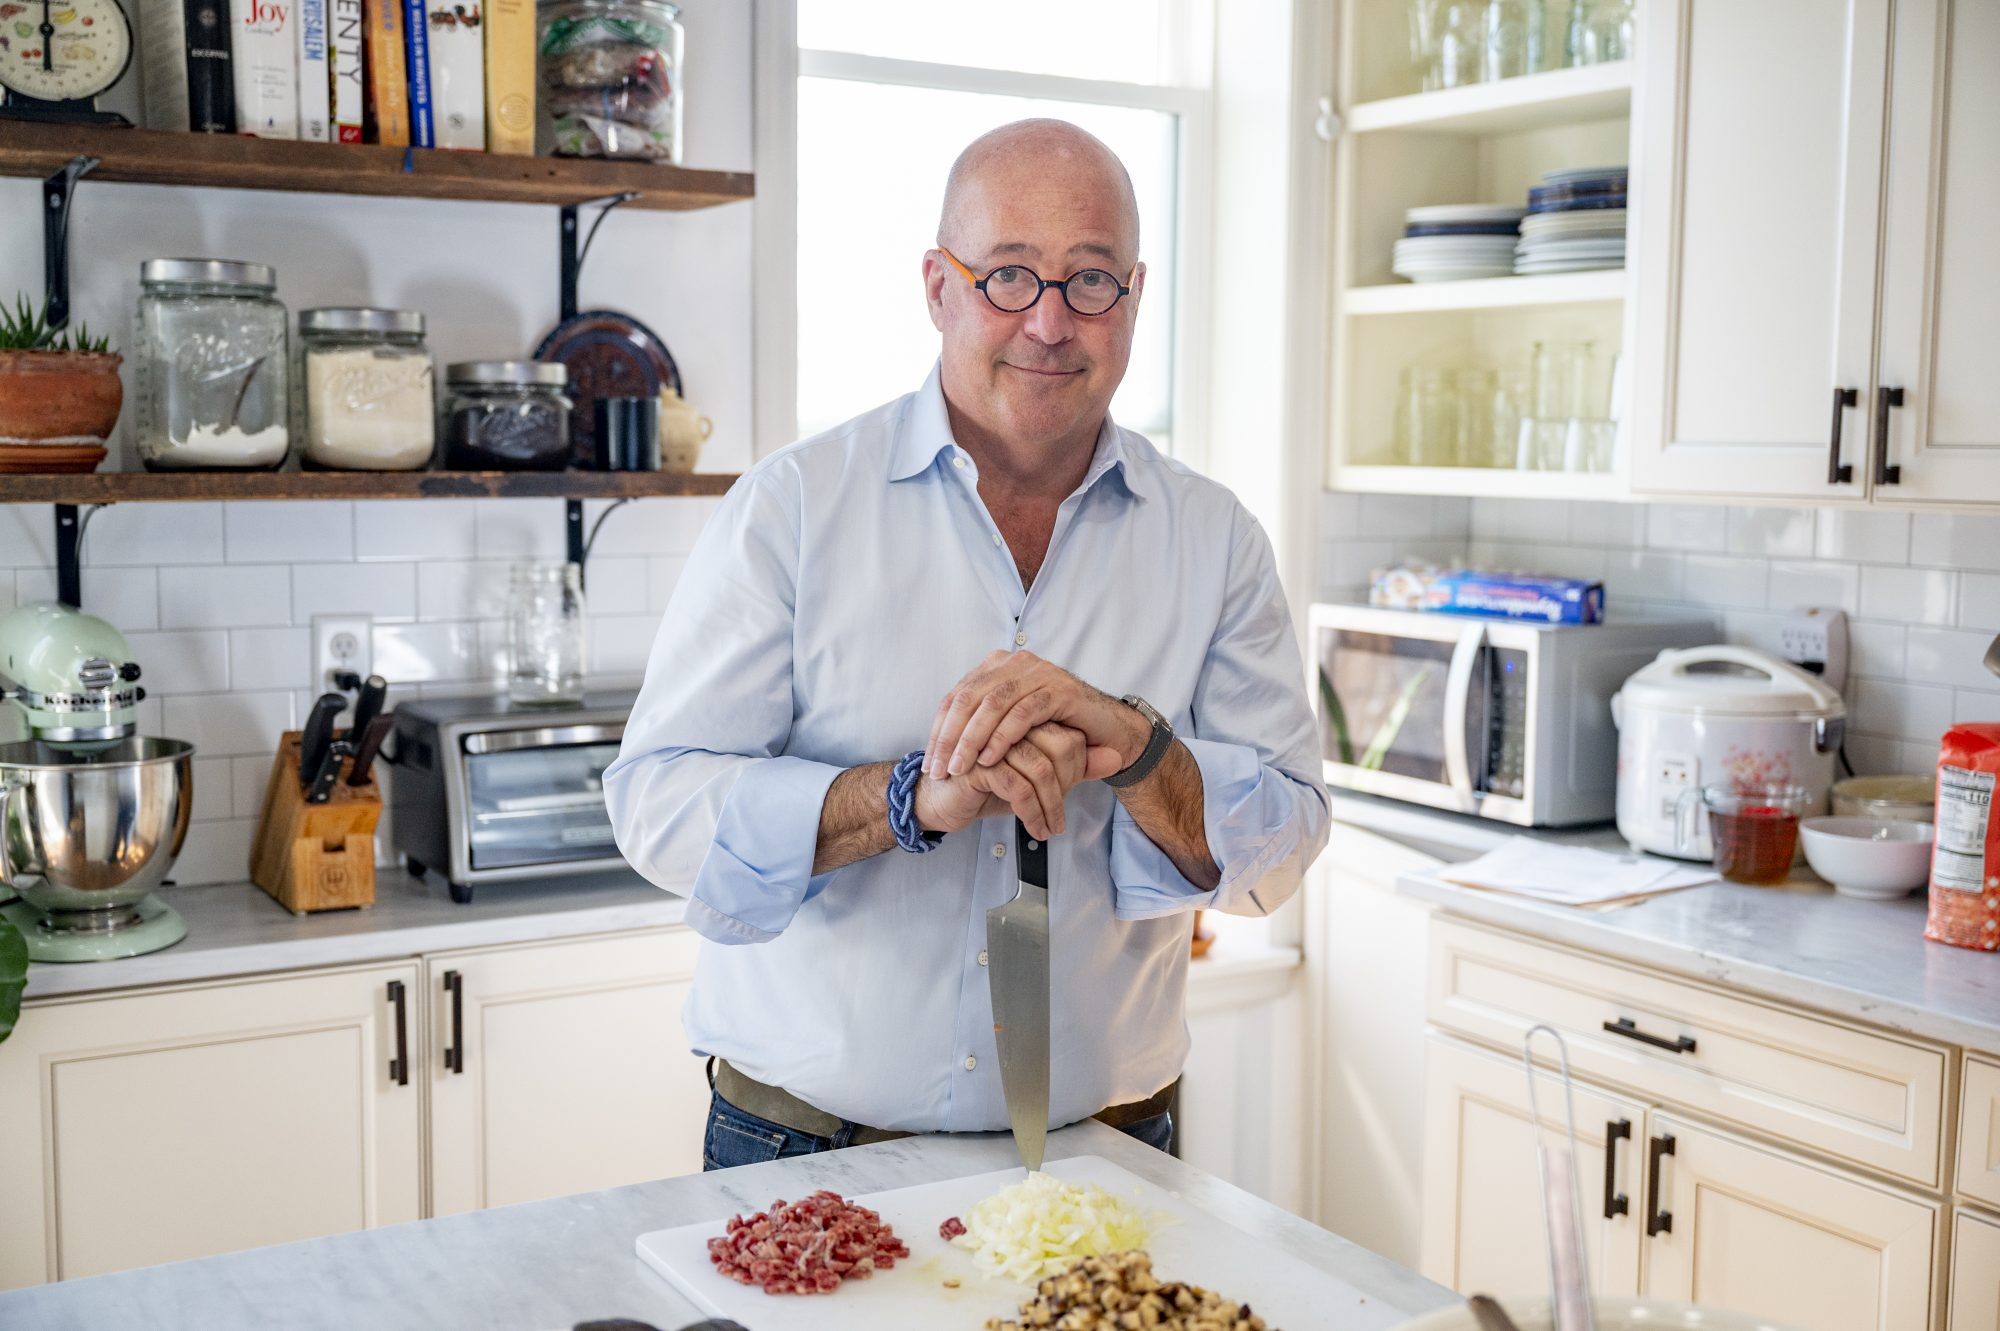 Andrew Zimmern at kitchen counter holding a knife